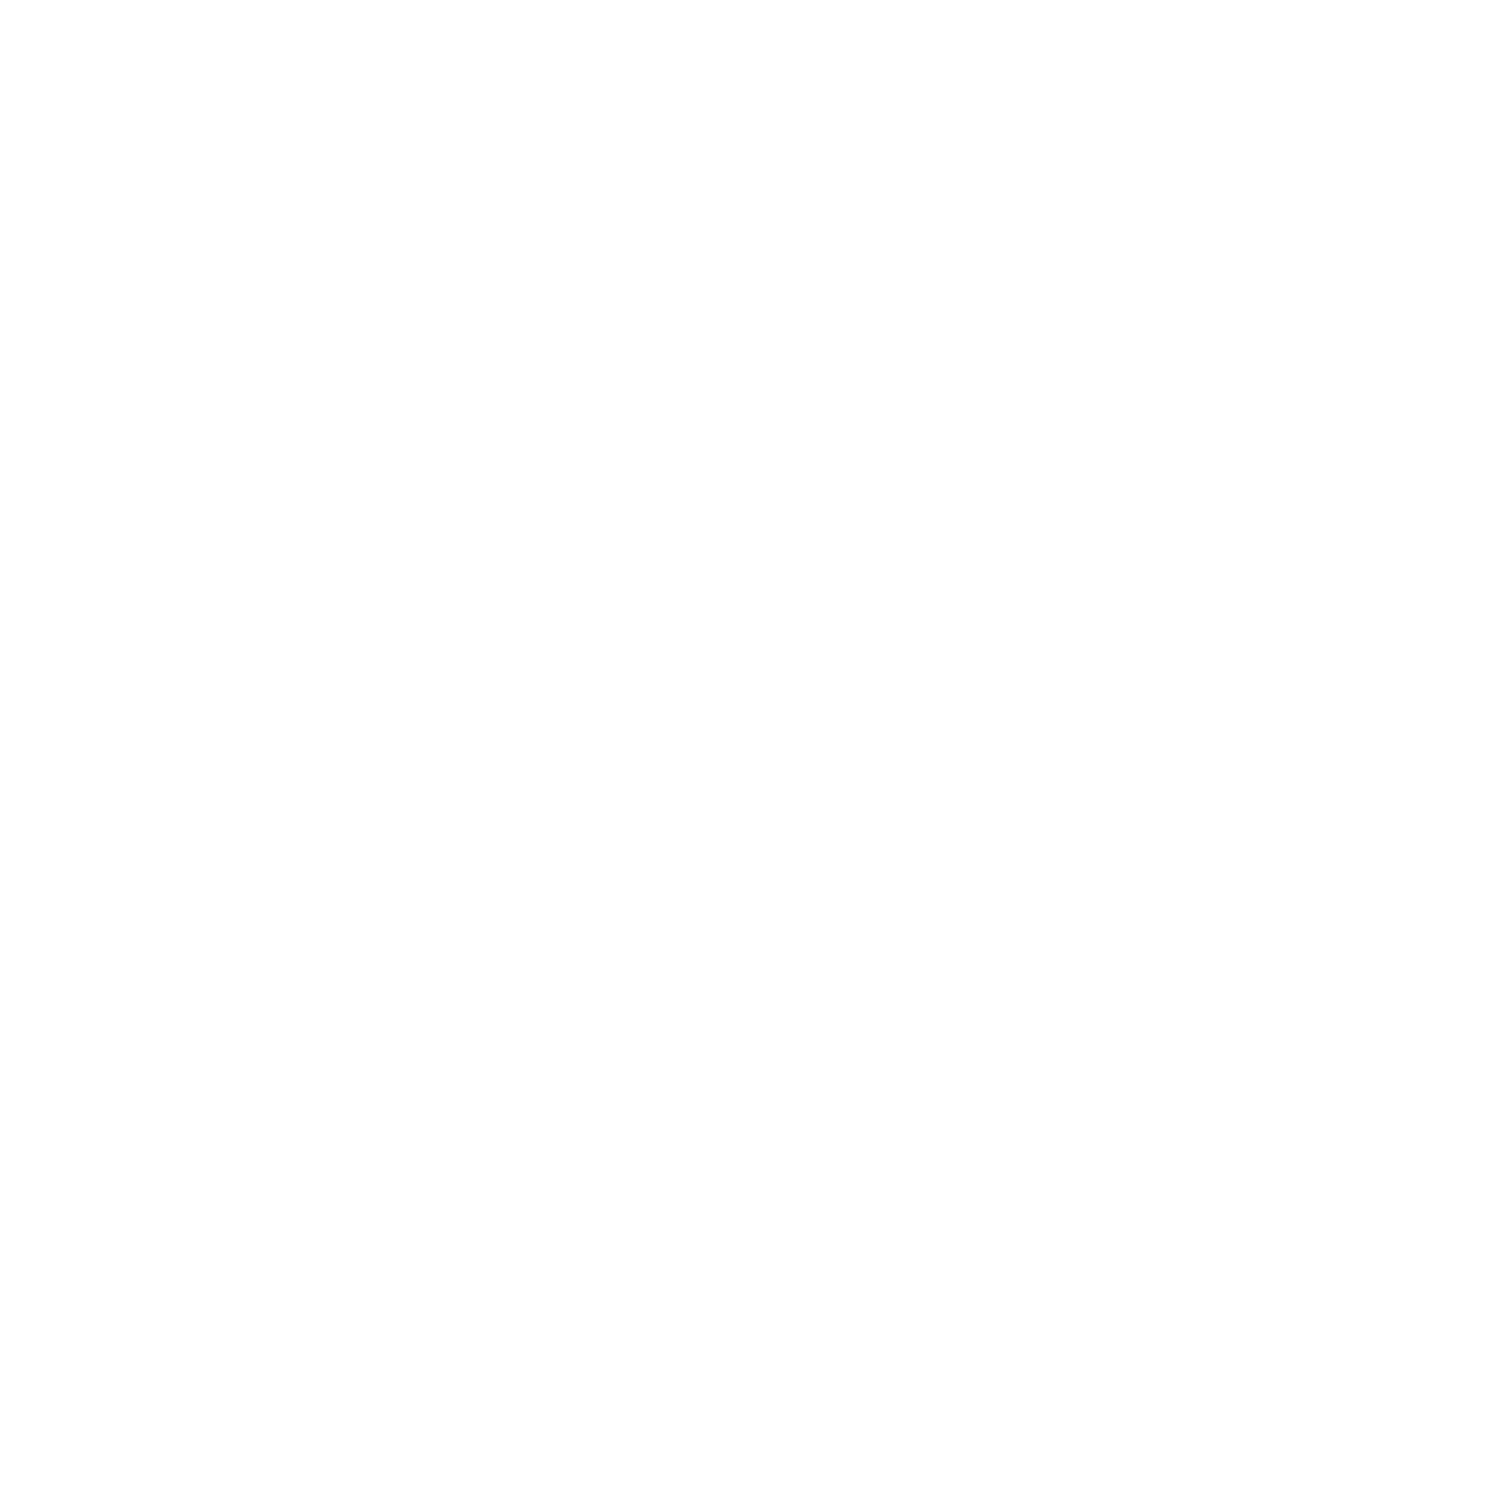 Velocity Business Advisors